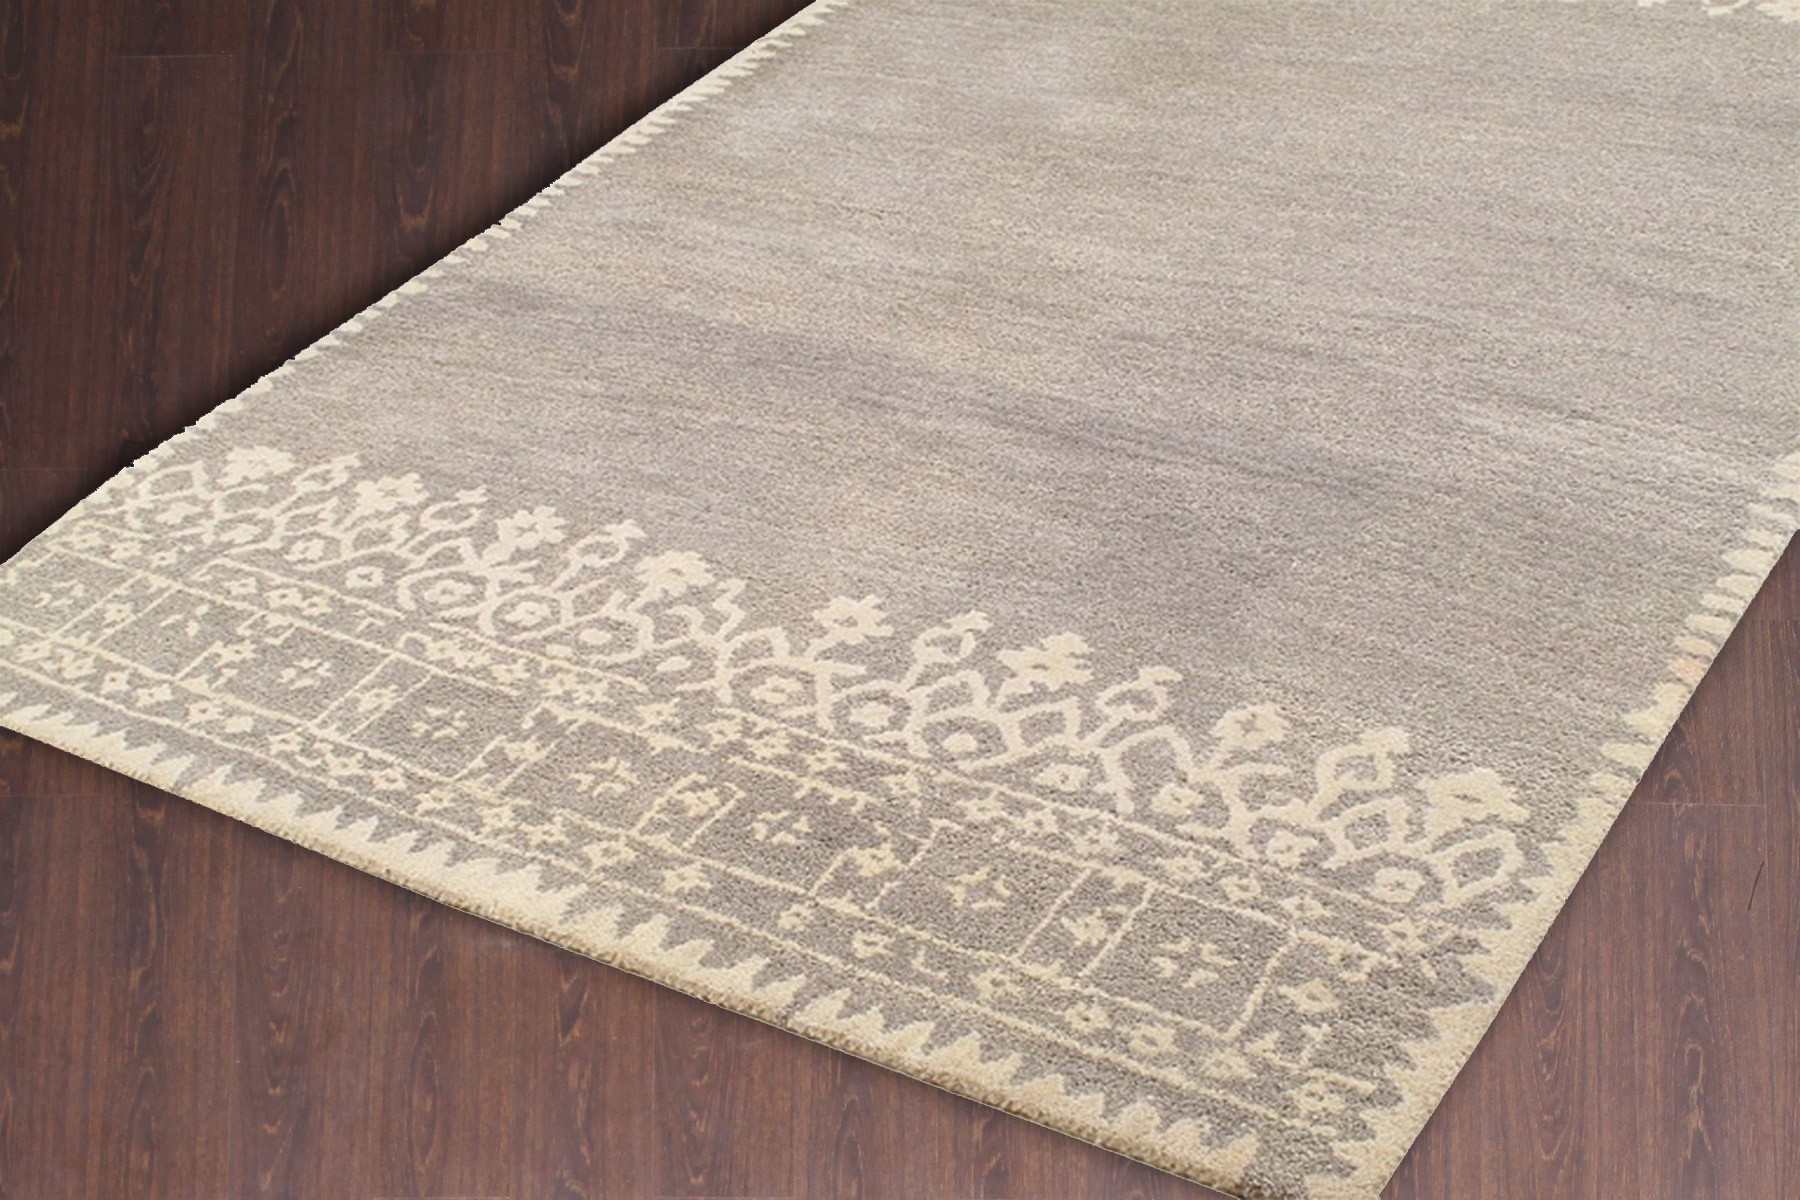 Cute wool area rugs for floor decor ideas with modern wool area rugs